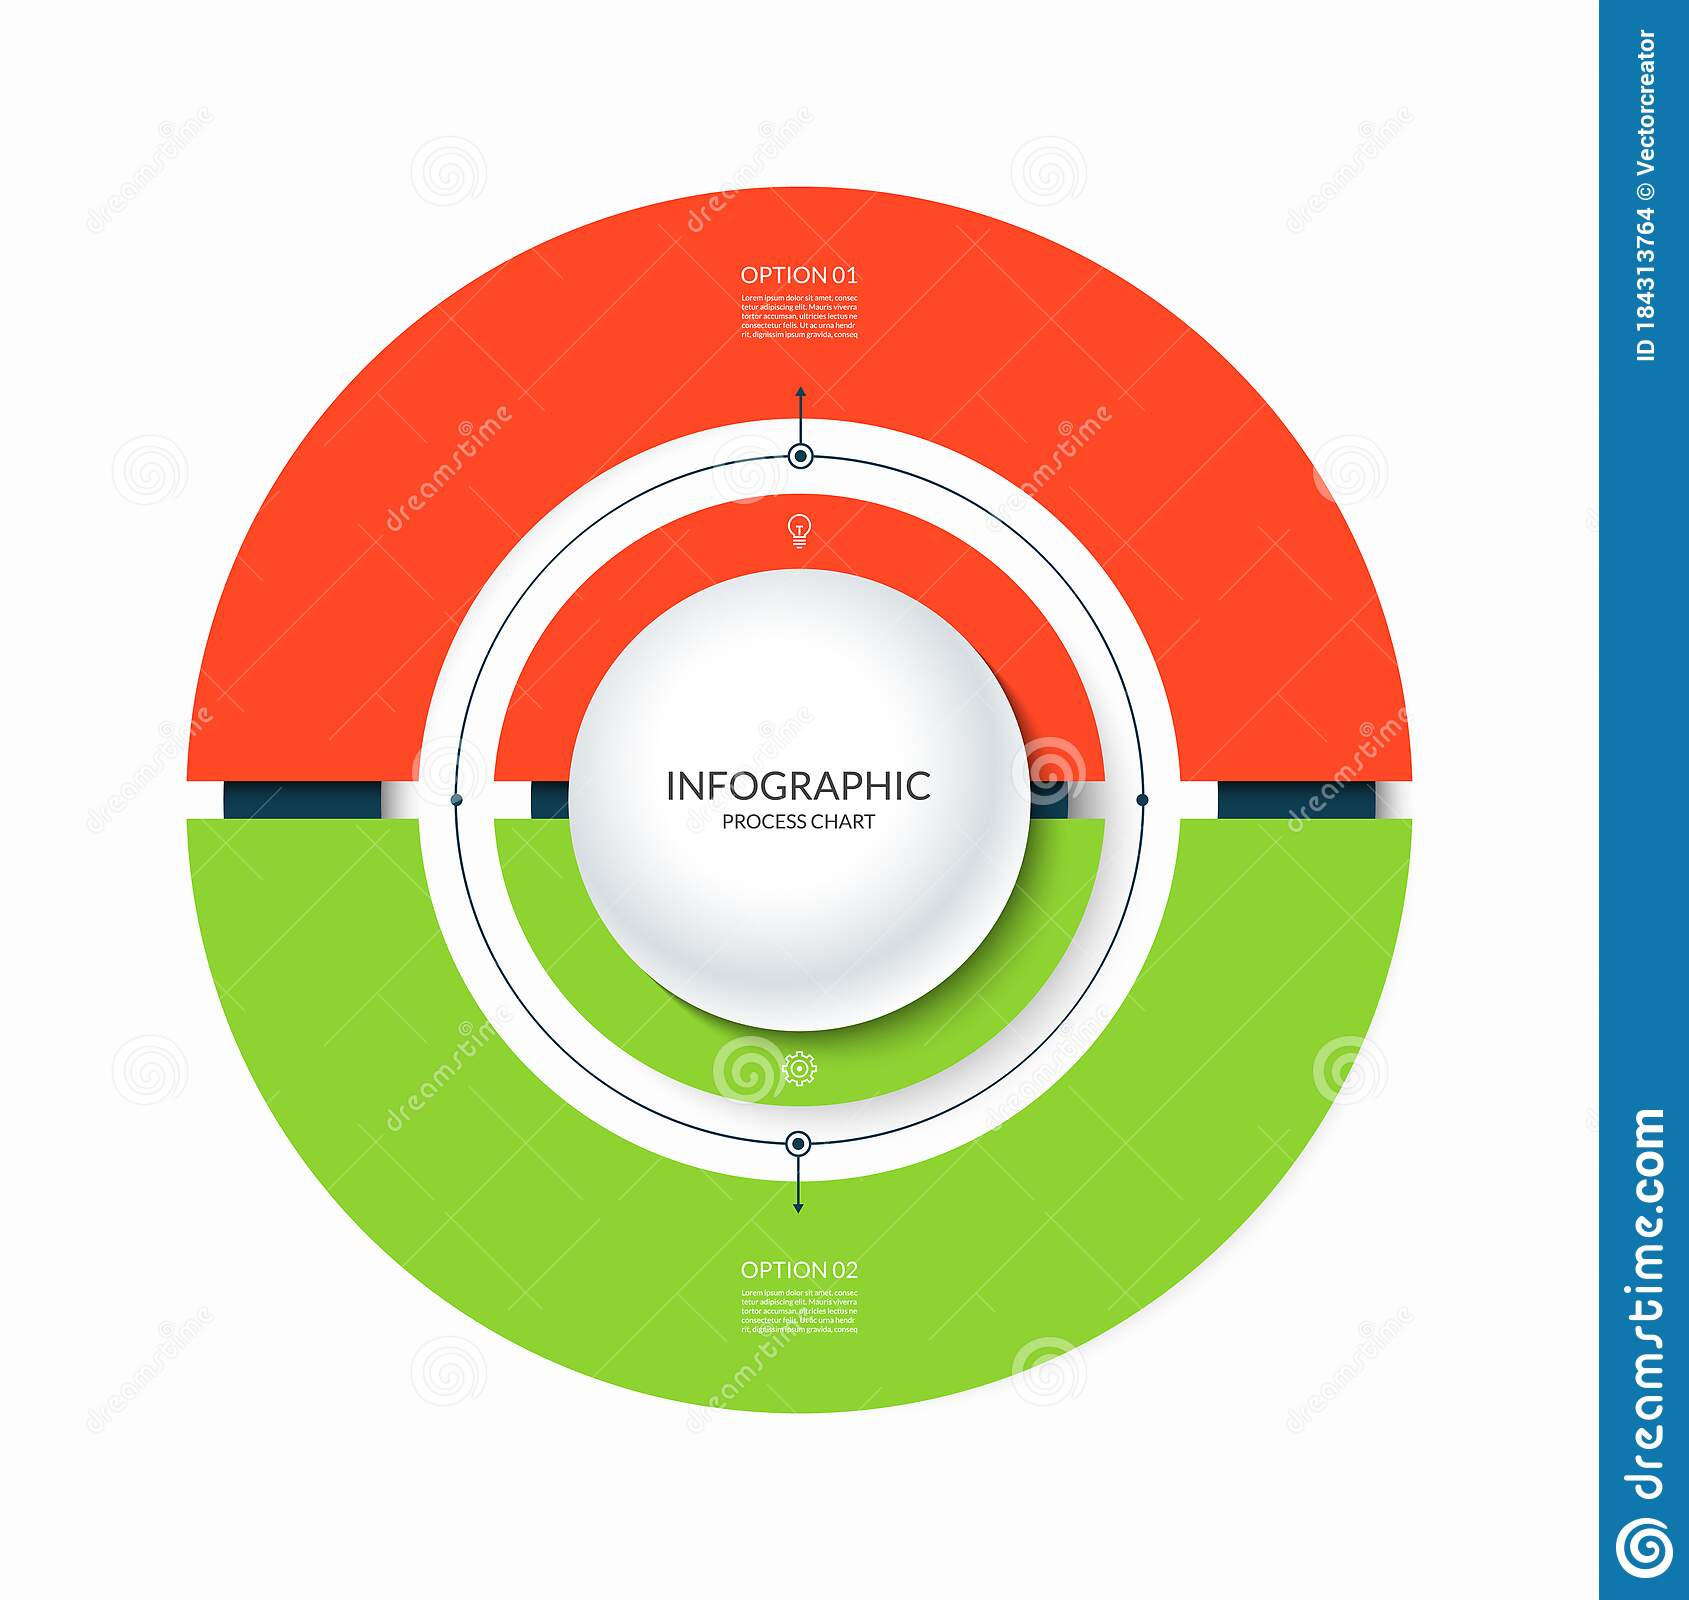 Infographic Circular Chart Divided Into 2 Parts Step By Step Cycle Diagram With Two Options Stock Vector Illustration Of Option Data 184313764